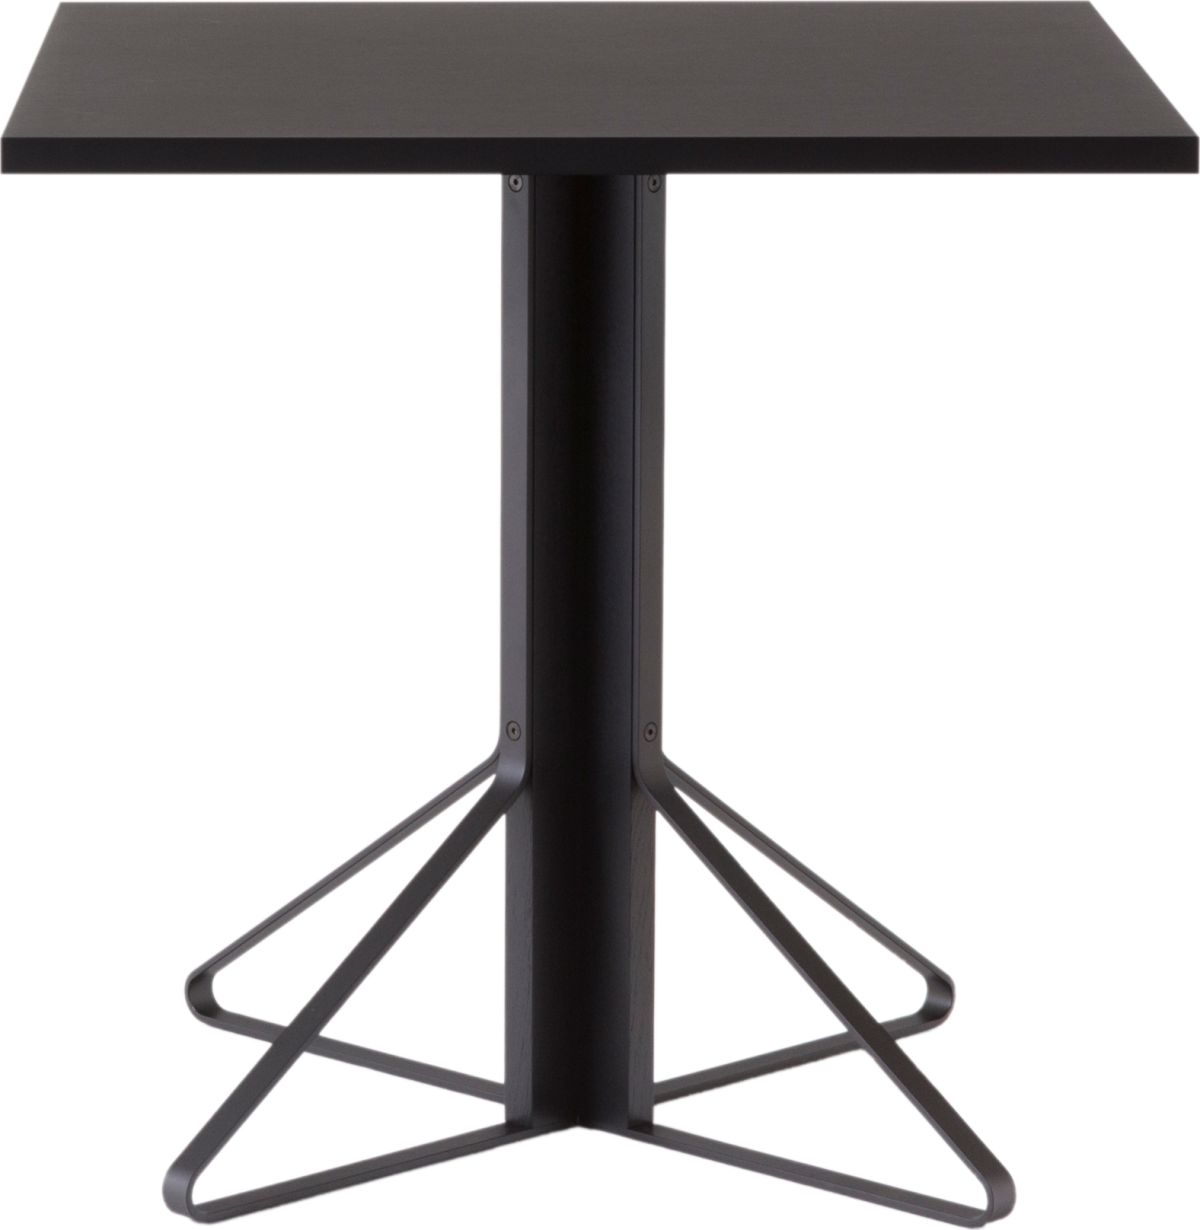 Kaari_Table_square_legs black lacquered oak_top black linoleum